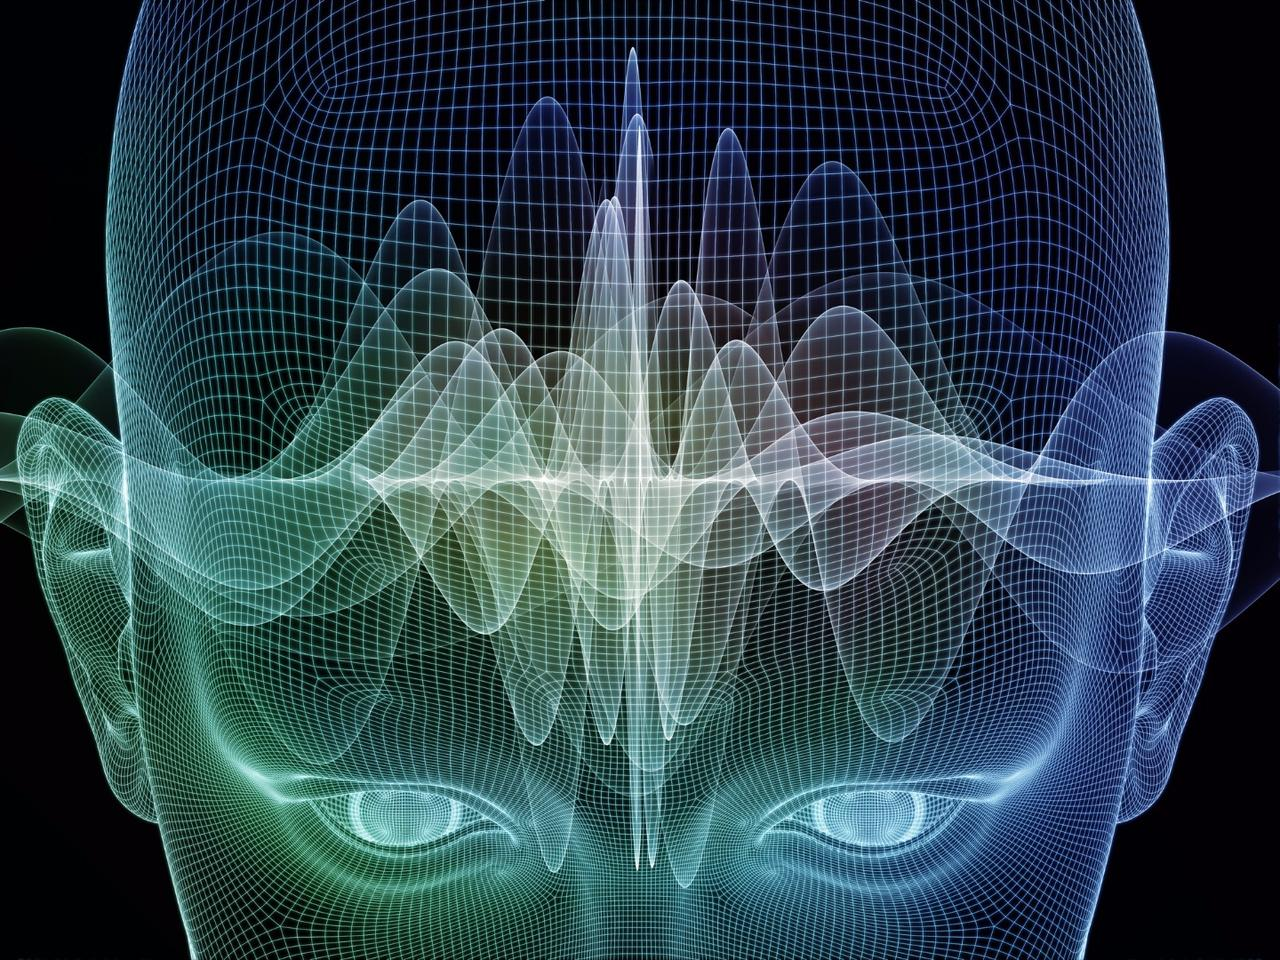 Using neurofeedback signals that correspond to amygdala activity, the new device can be used to help individuals modify and control their emotions through the regulation of the almond-shaped brain structure